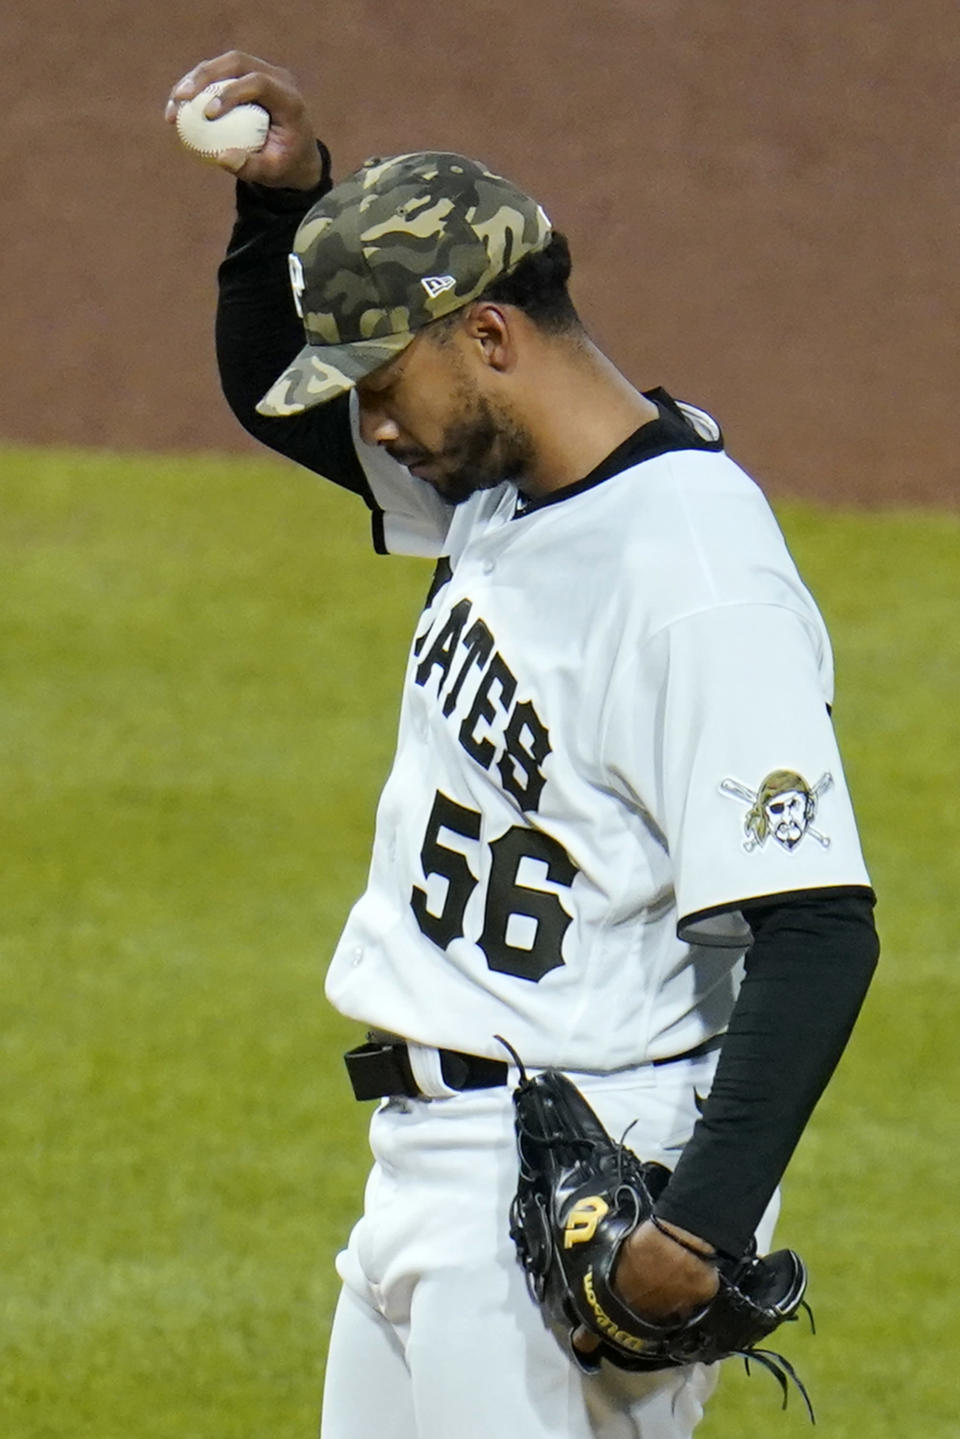 Pittsburgh Pirates relief pitcher Duane Underwood Jr. collects himself after giving up a solo home run to San Francisco Giants' Brandon Crawford during the eighth inning of a baseball game in Pittsburgh, Friday, May 14, 2021. (AP Photo/Gene J. Puskar)